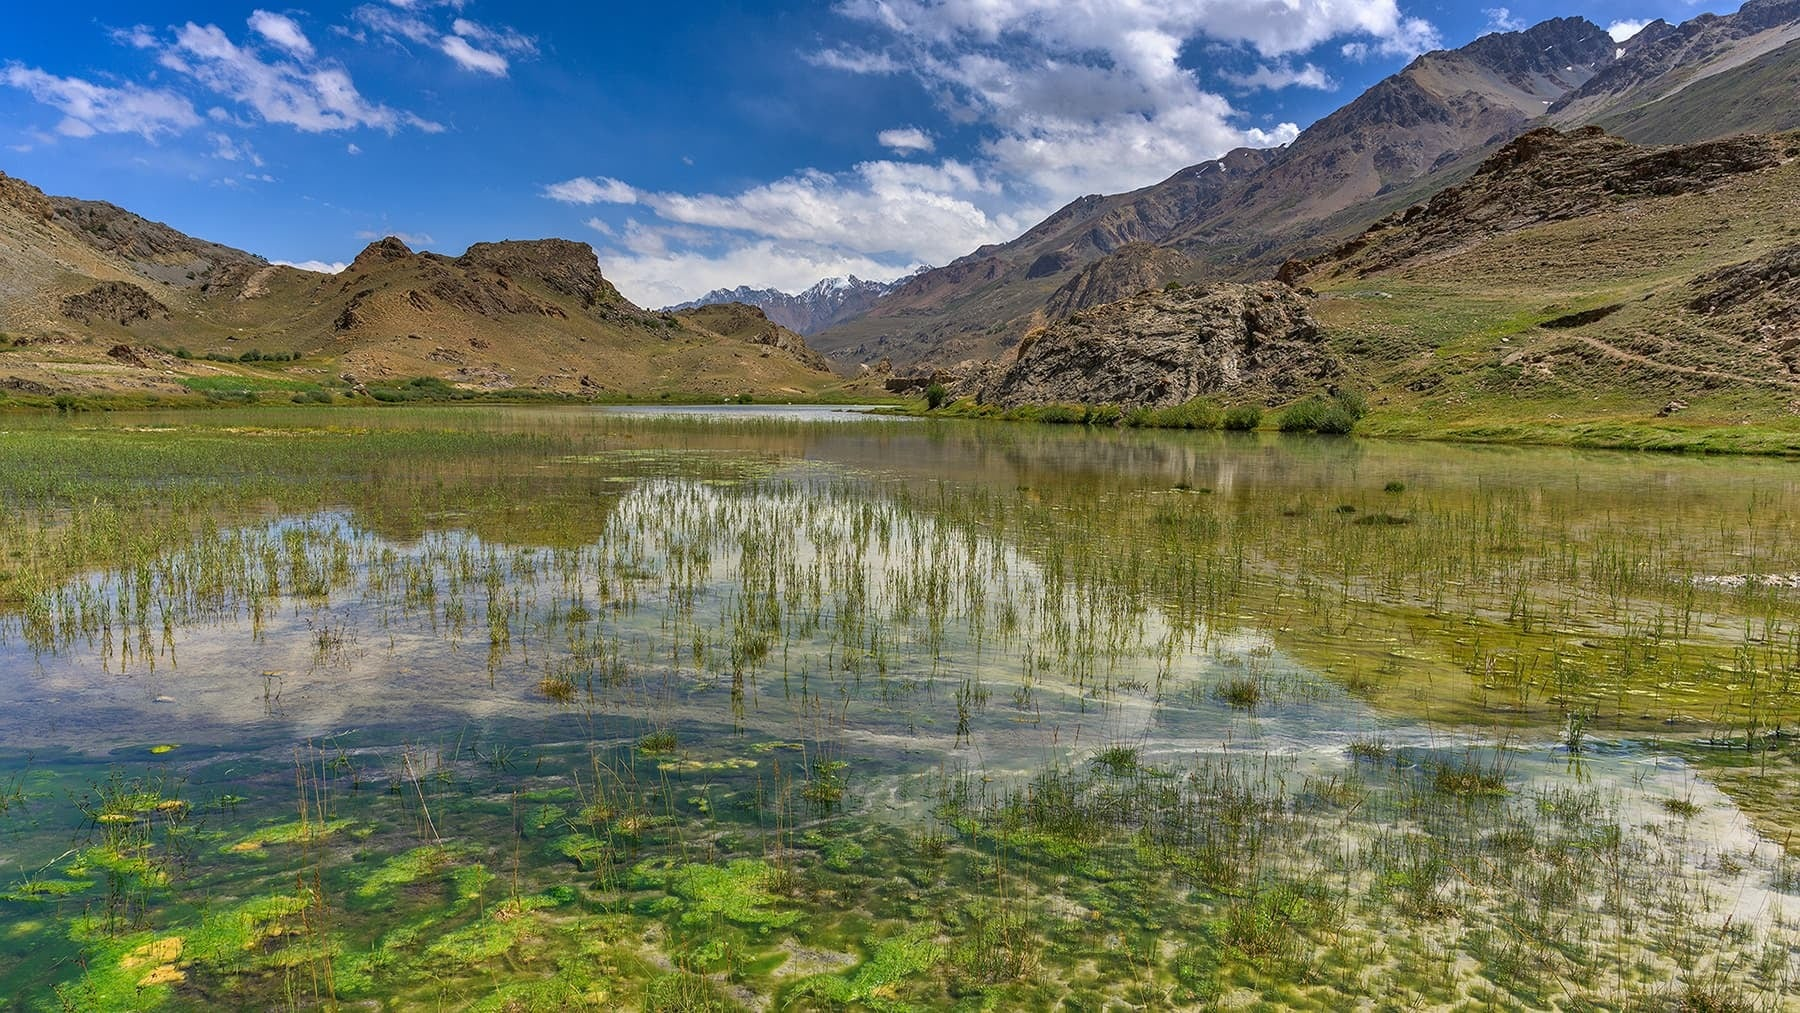 A pond on the way to Lashkargaz. — *Photo by author*